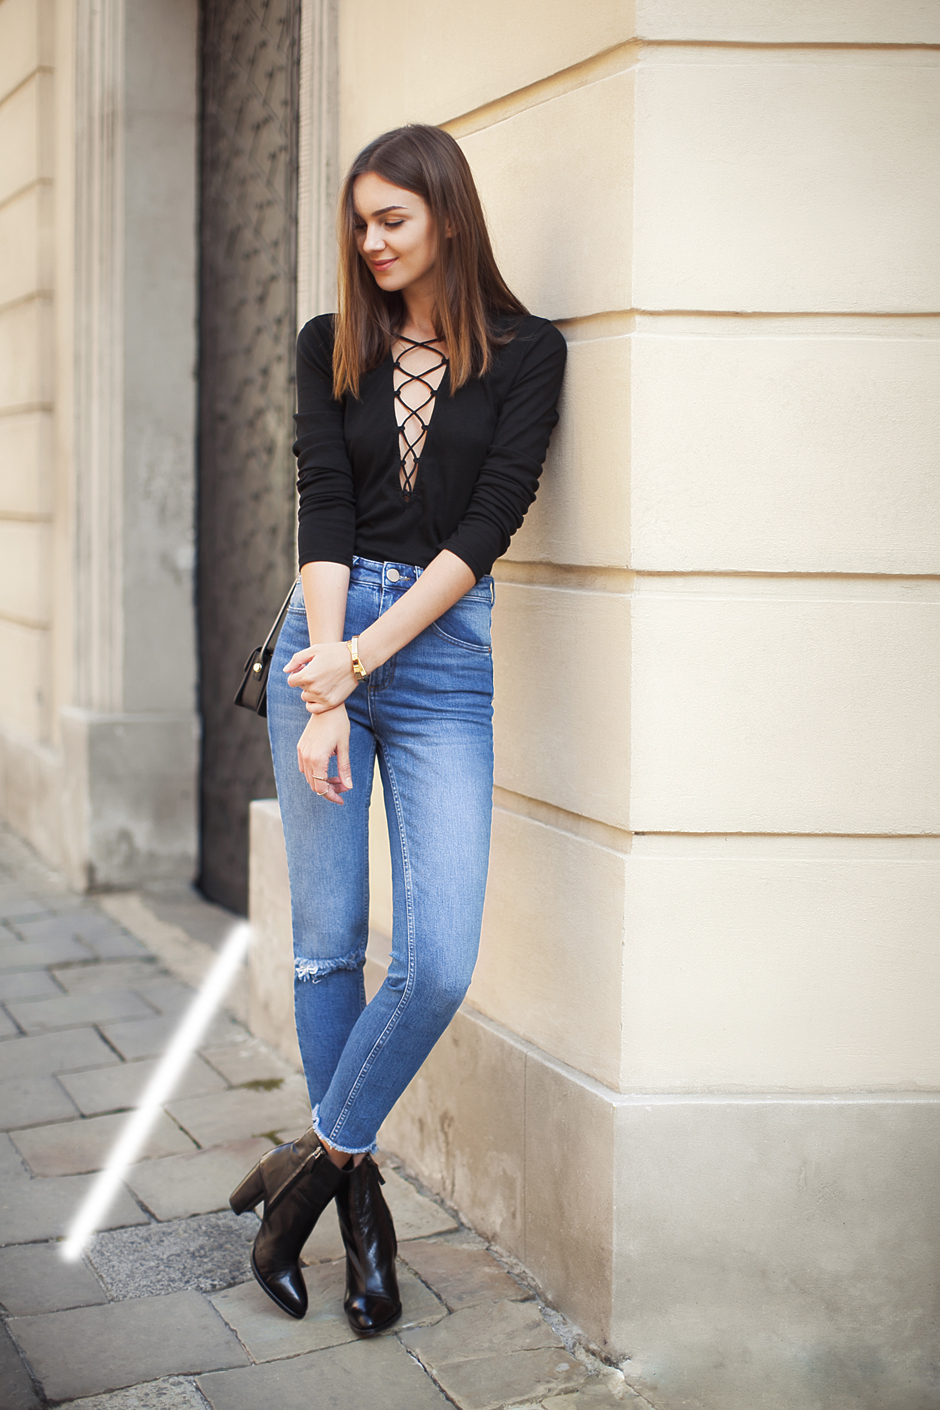 high-waisted-jeans-street-style-outfit-fashion-blog